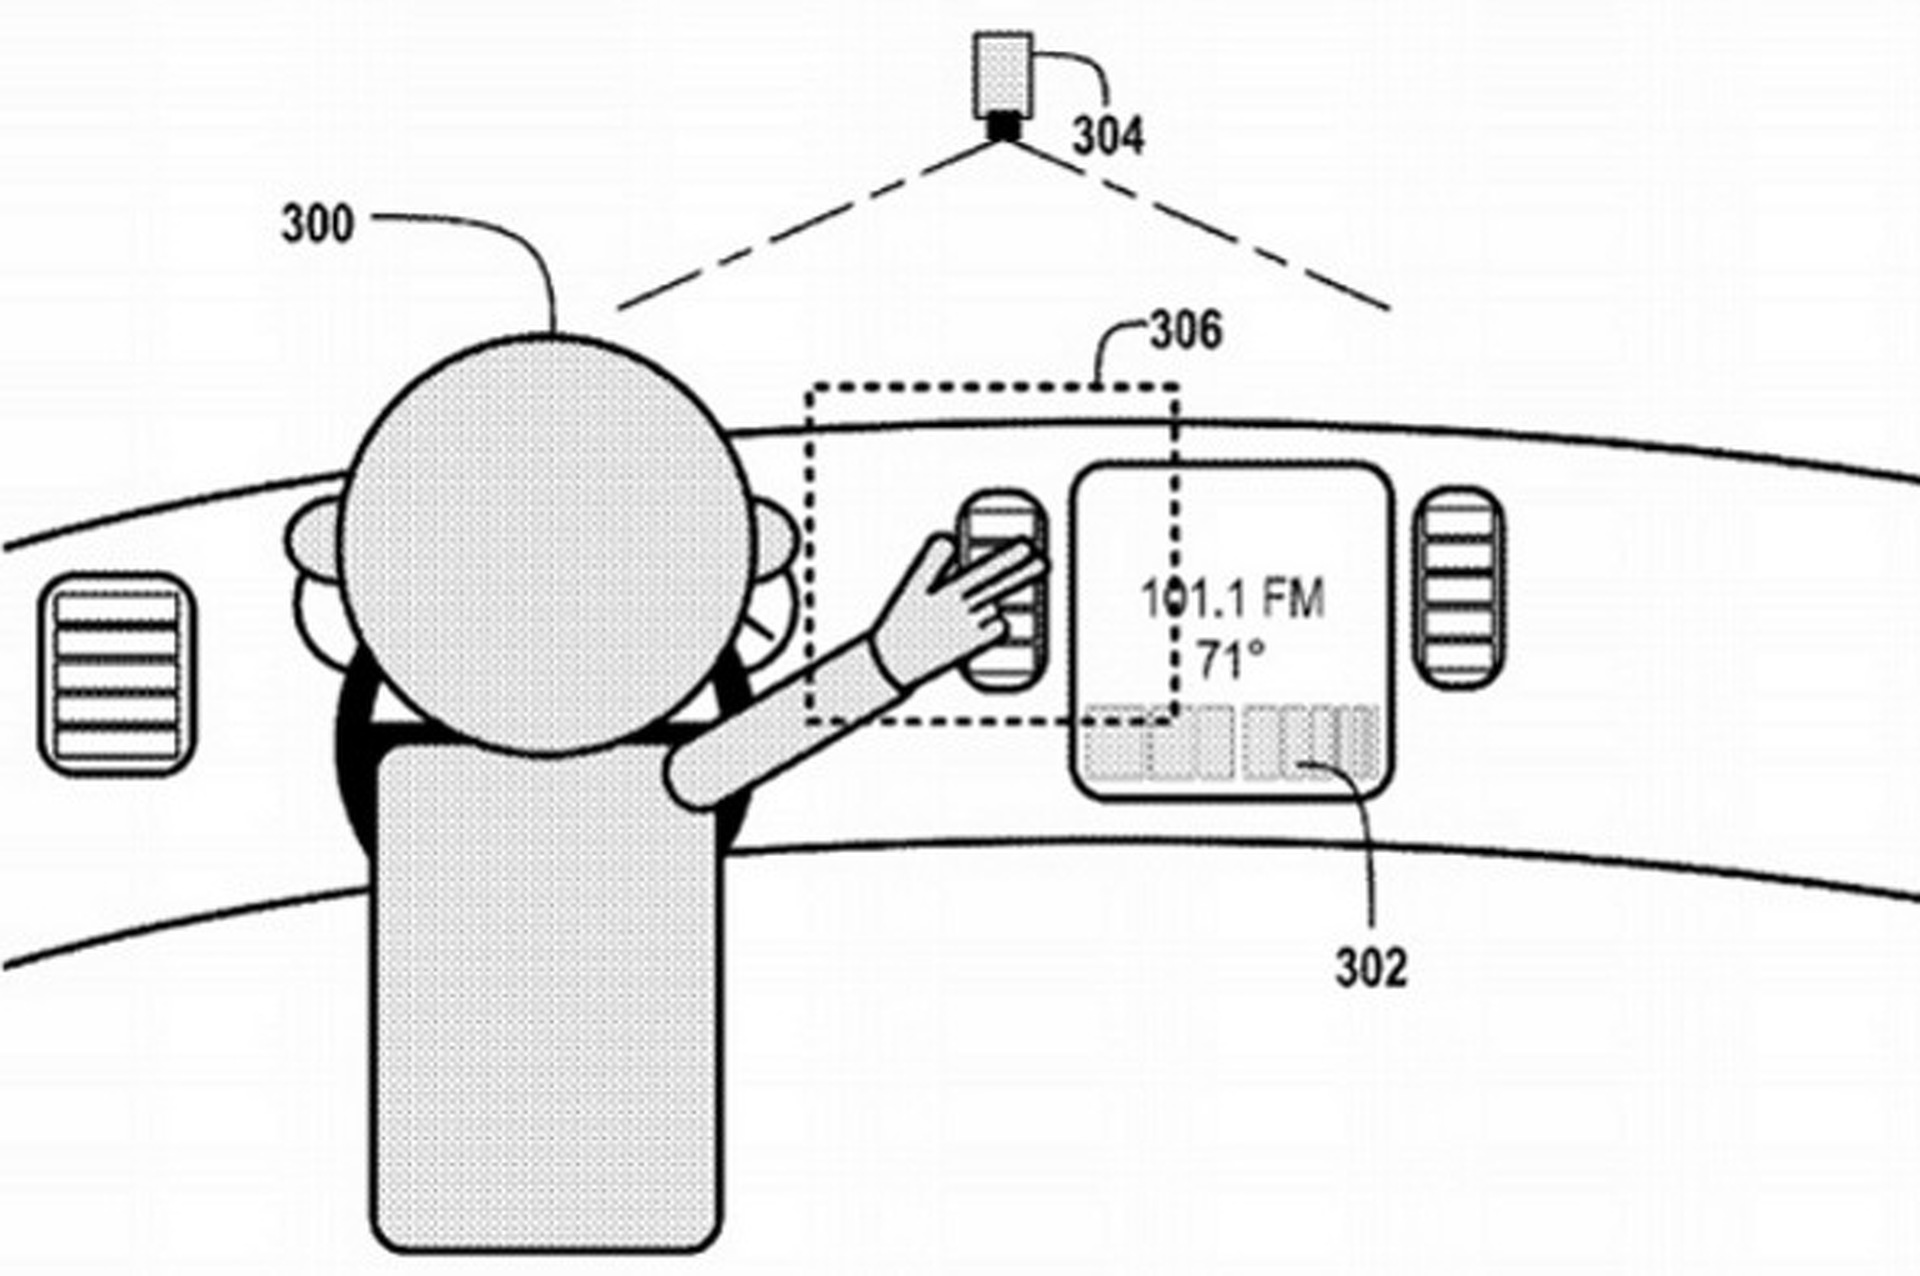 Google Files Patent for In-Car Gesture Recognition